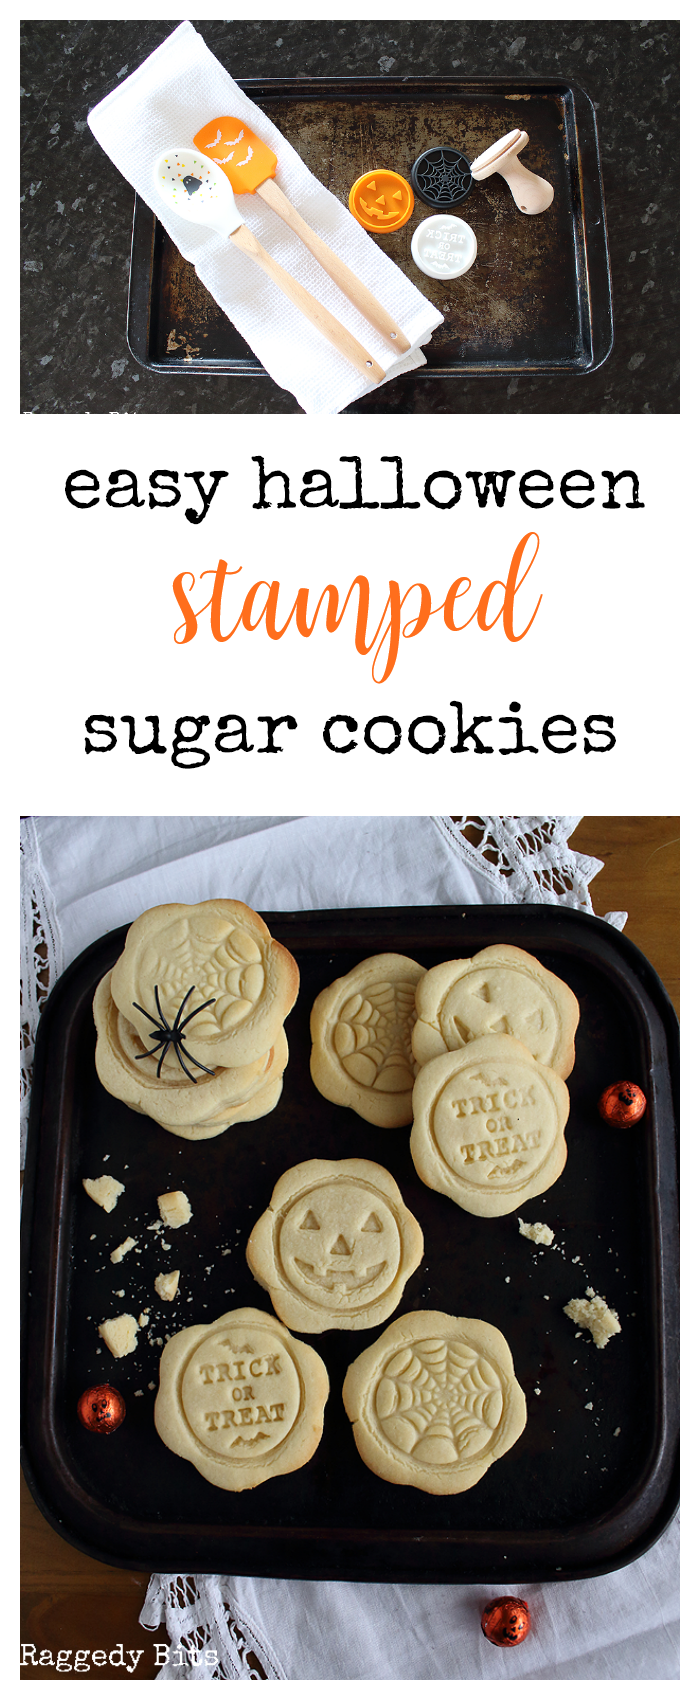 DAY 4 - Easy Halloween Stamped Sugar Cookies | Make 5 fun projects between now and Halloween | www.raggedy-bits.com #halloween #easyrecipe #halloweendecorations#decoratingideas #easy #cookies #halloweencookies